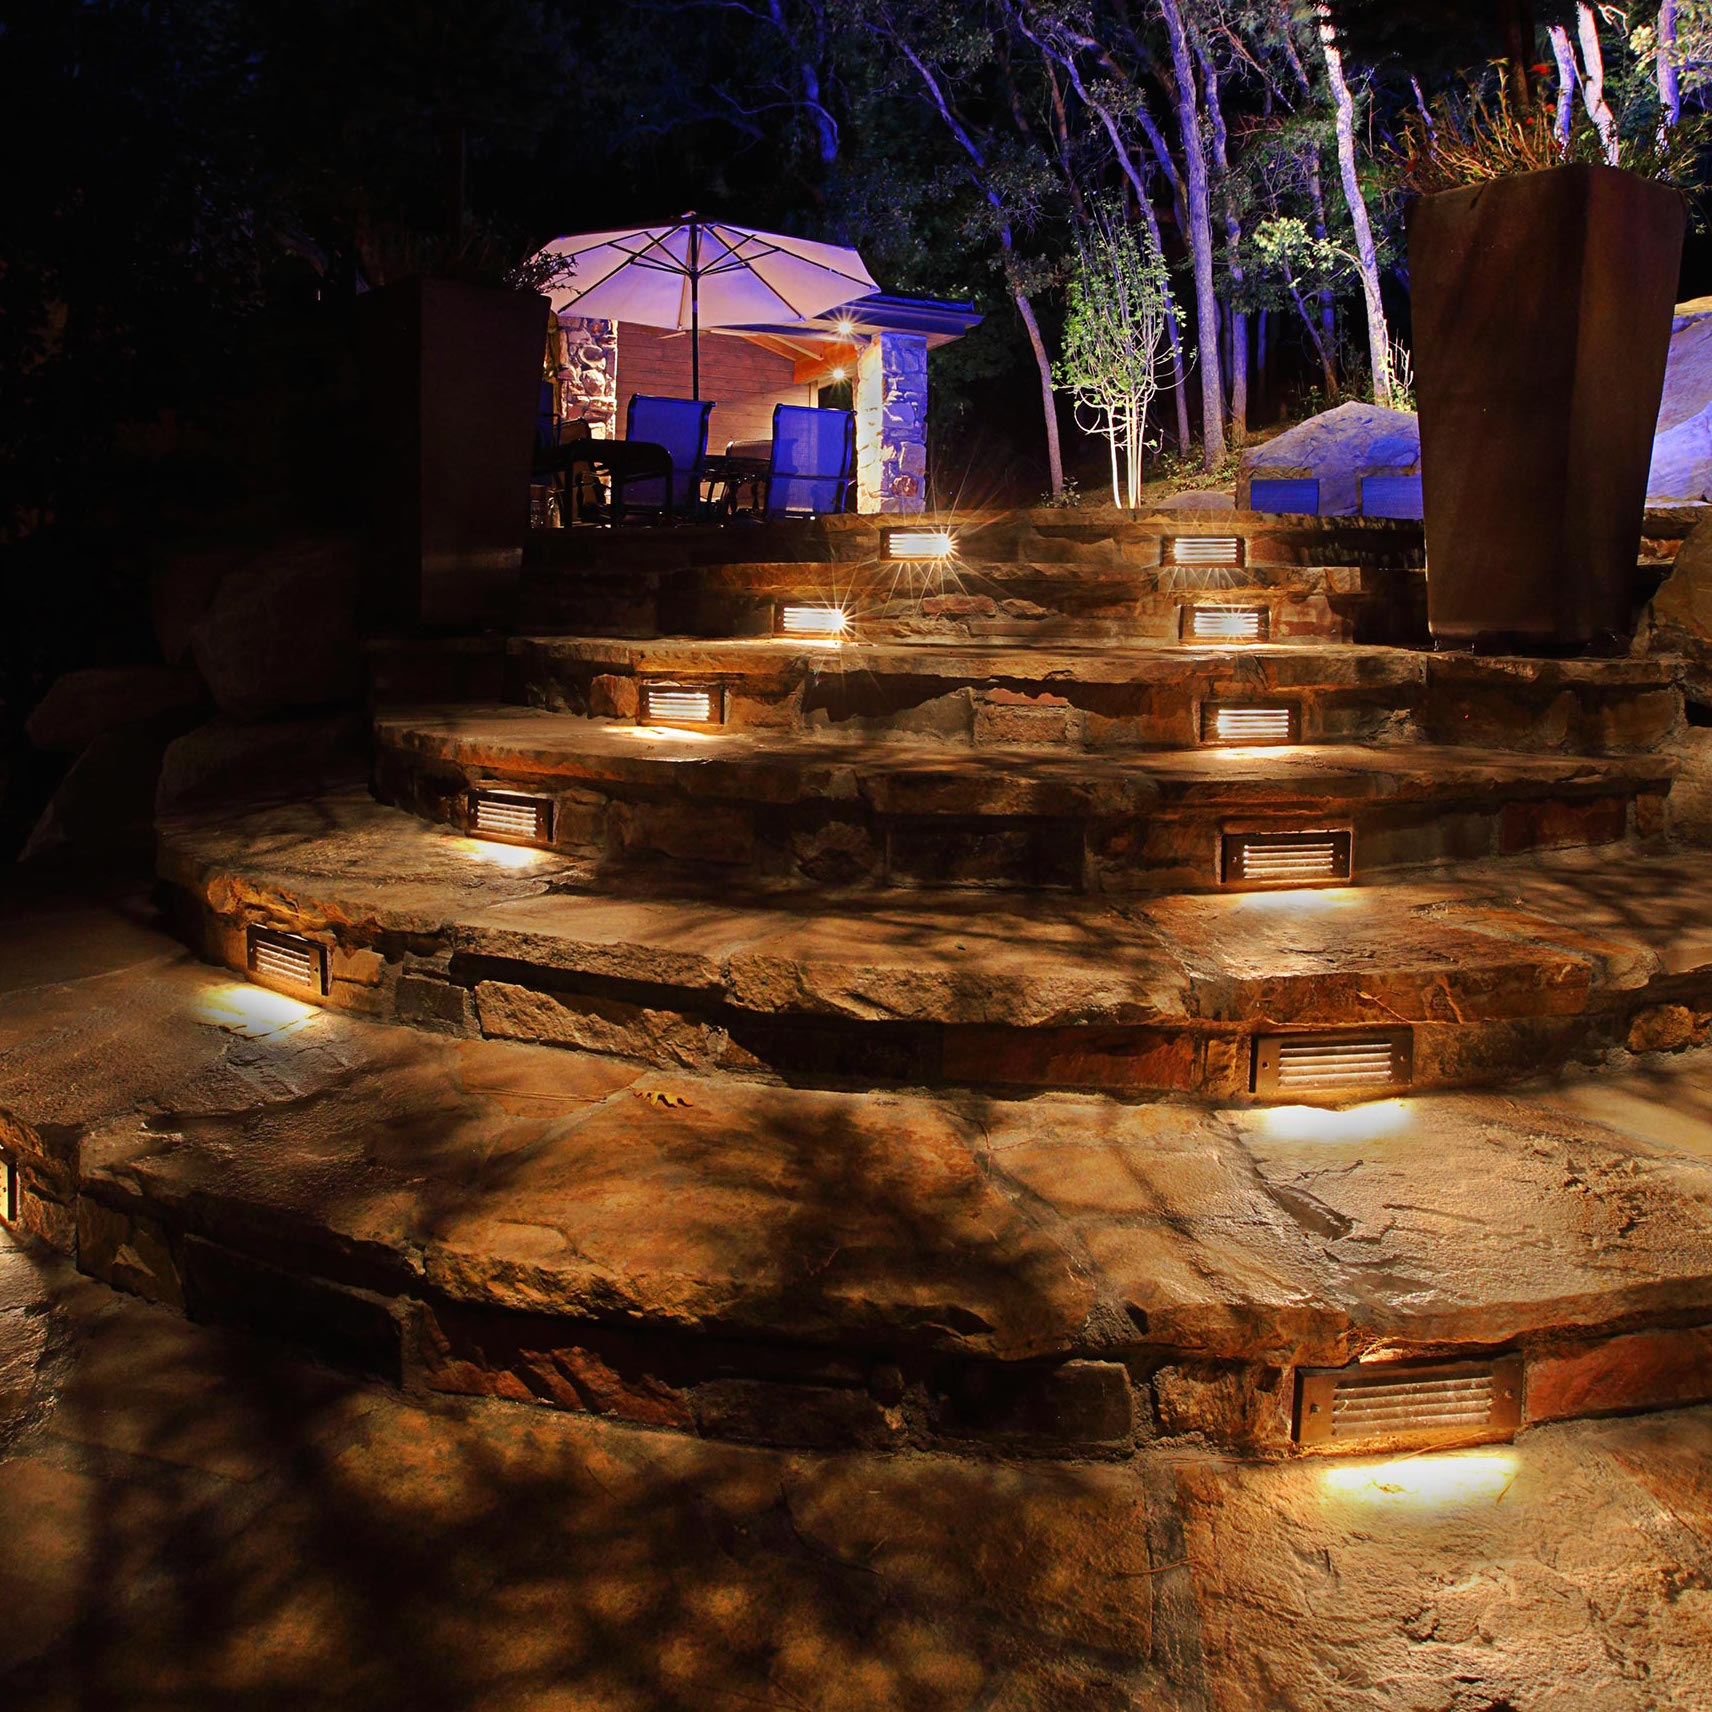 lighting for your outdoor kitchen outdoor kitchen lighting banales Copy concrete2 Copy